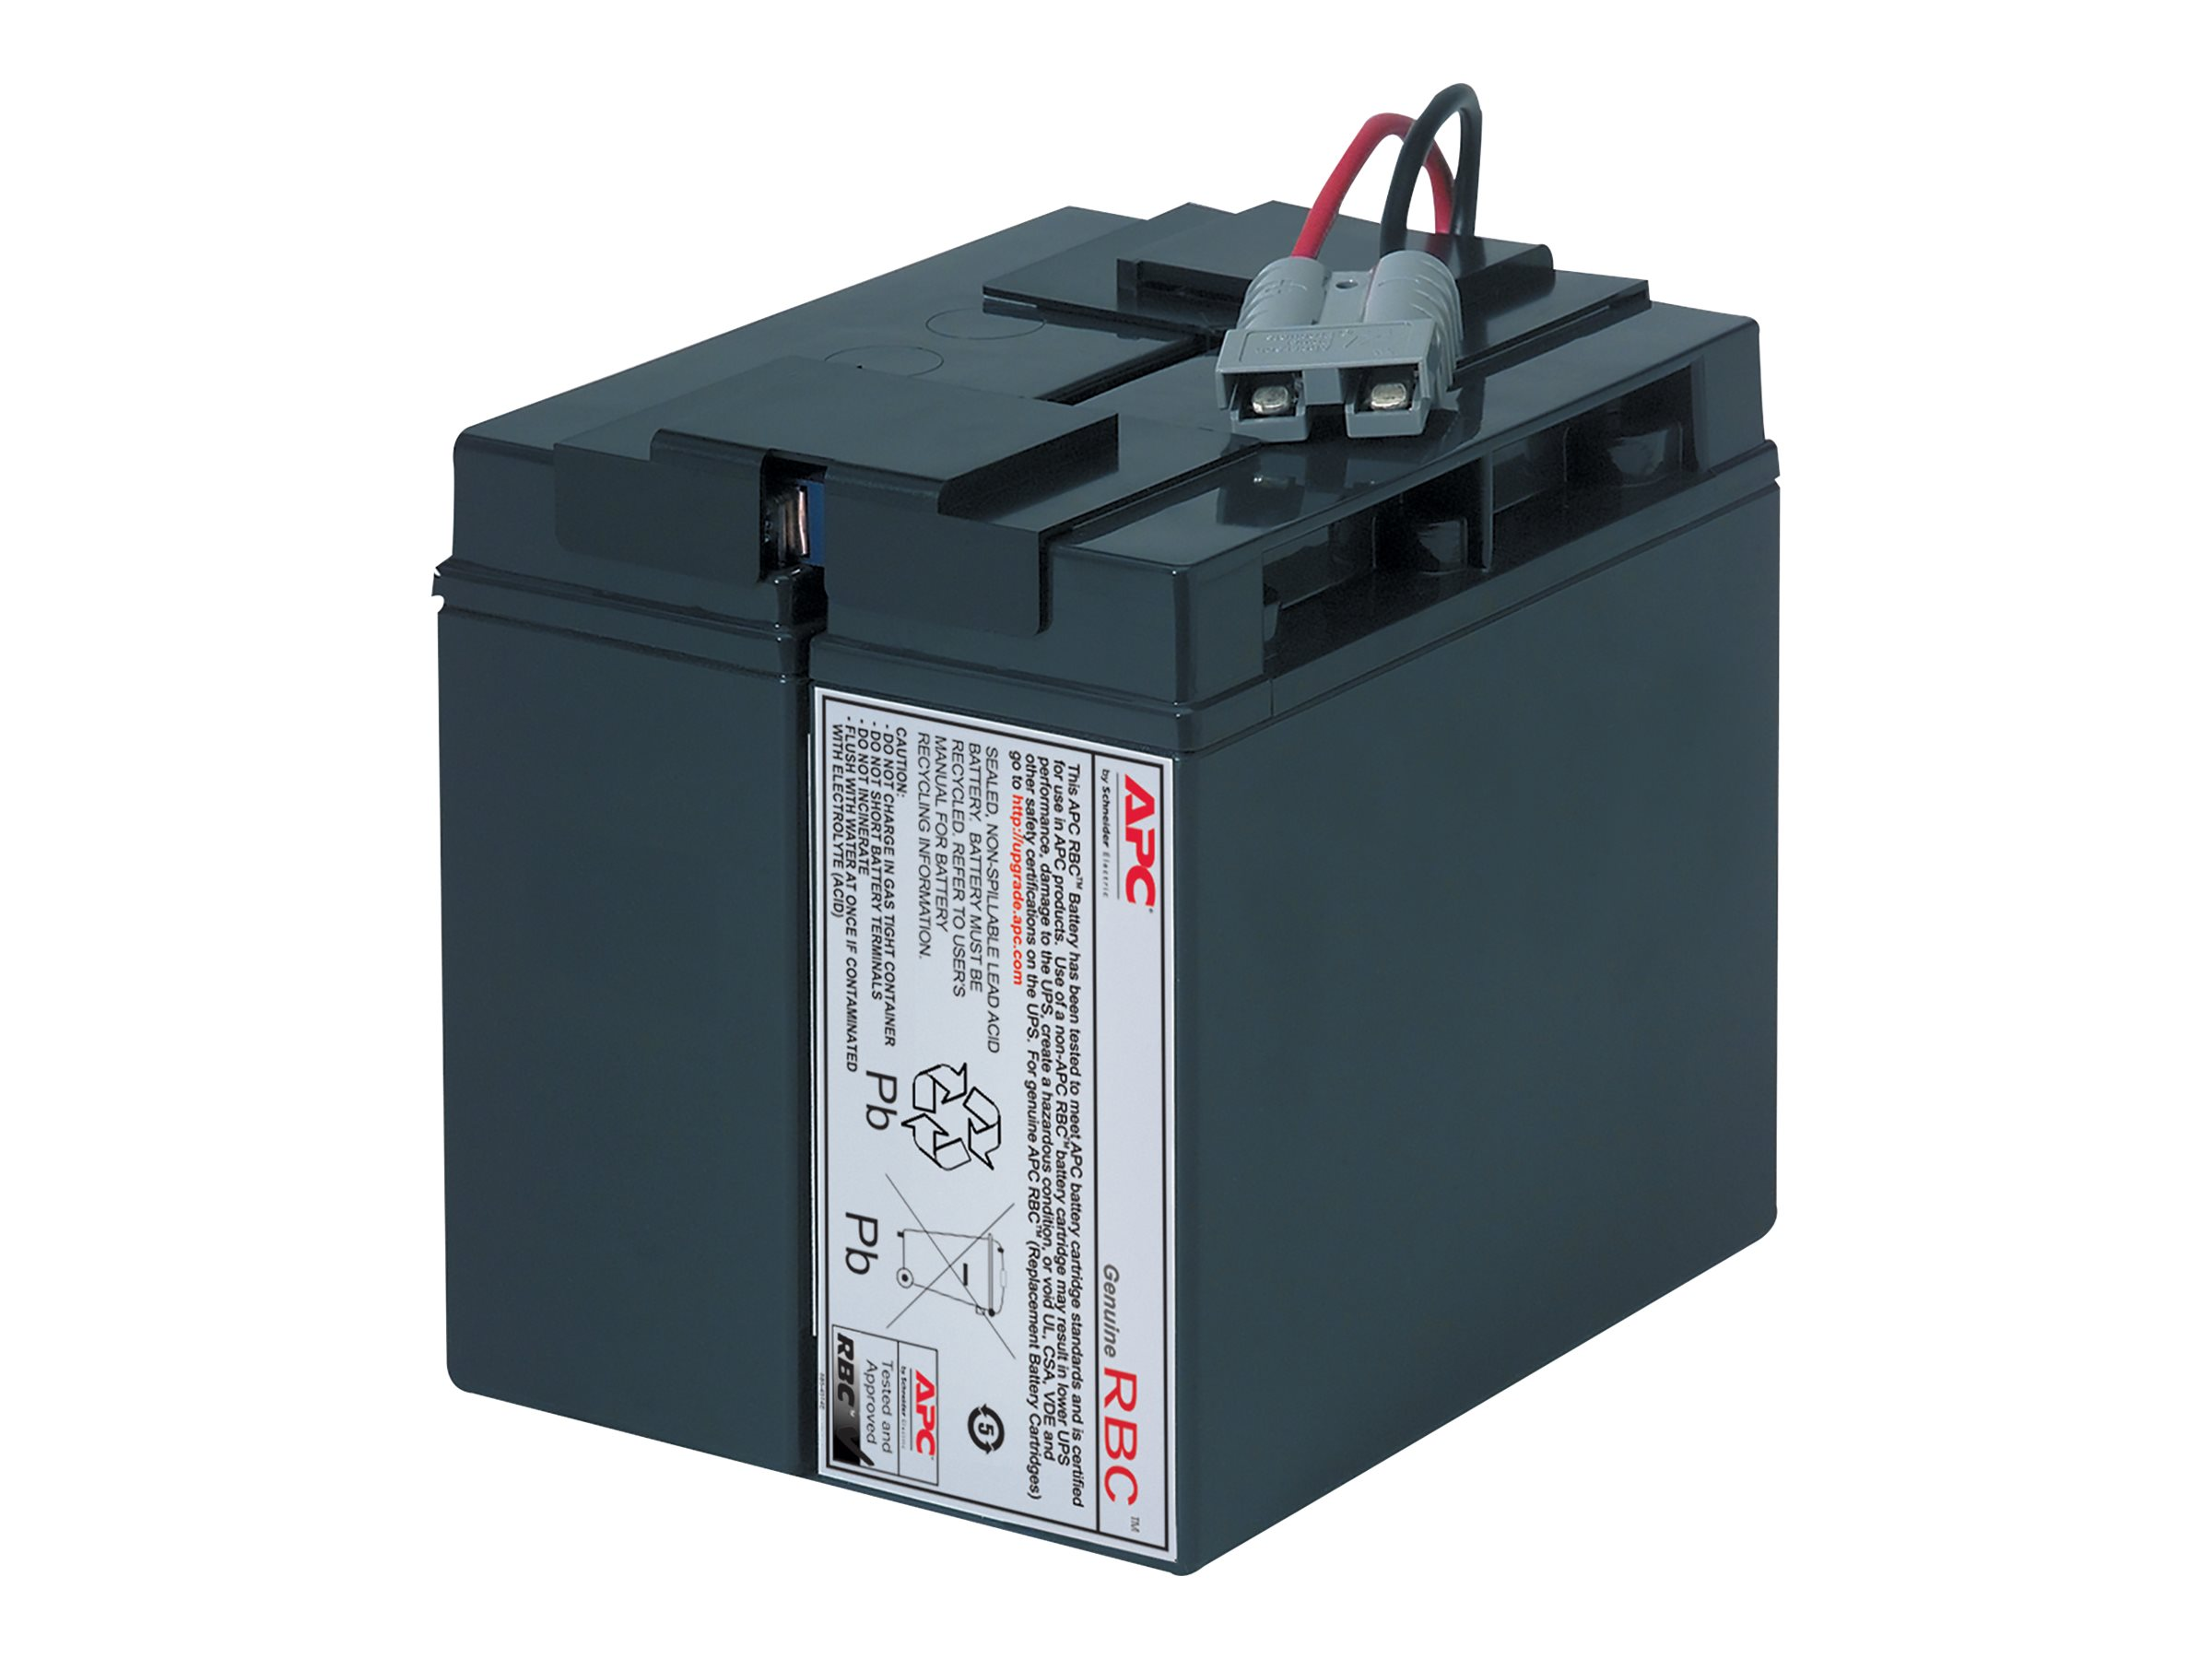 apc smt1500 battery replacement instructions